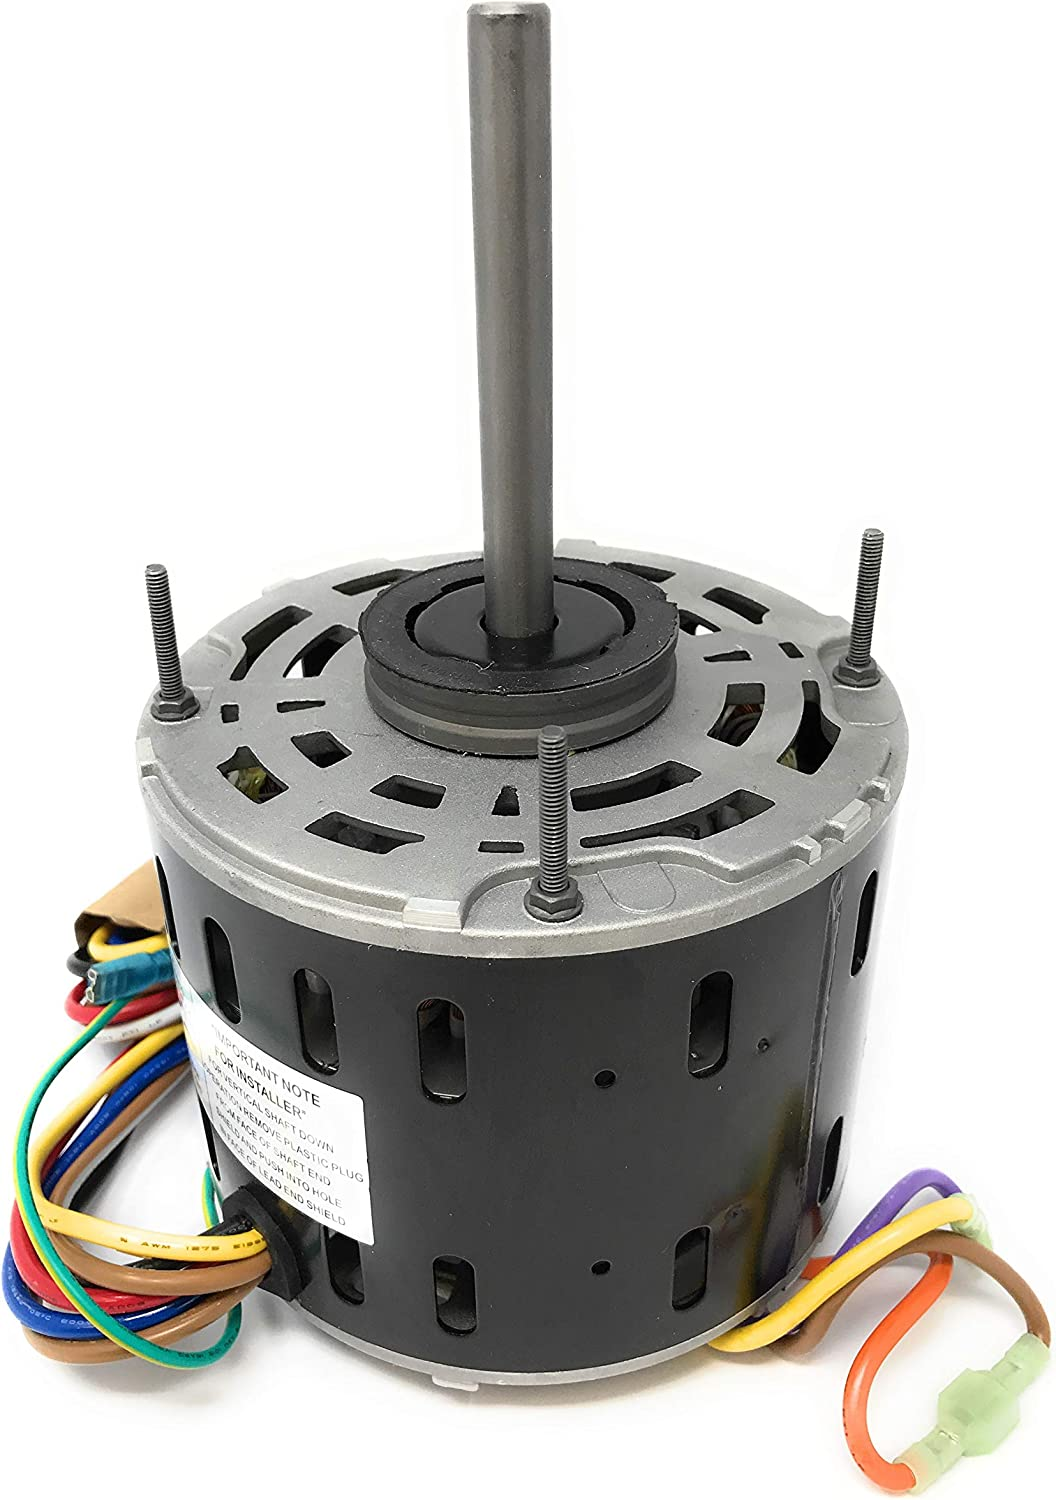 A1588, 1/2HP 230V Air Handler Motor, 1075RPM, 3.2AMP